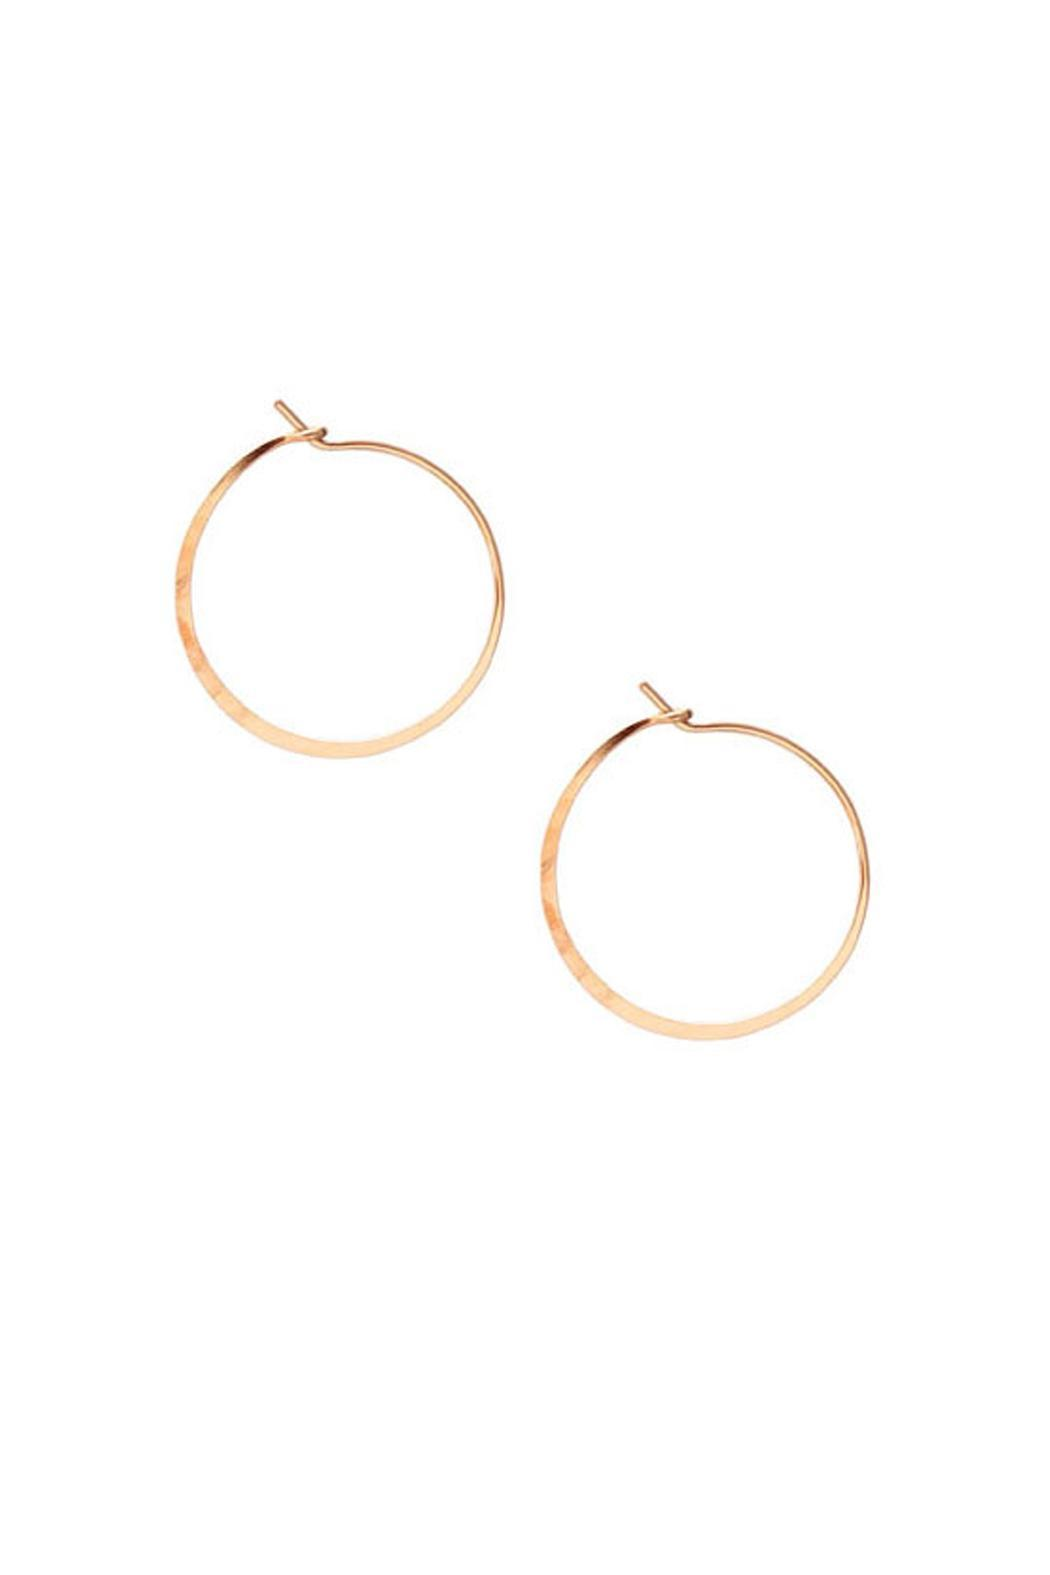 Kris Nations Small Simple Hoops - Main Image